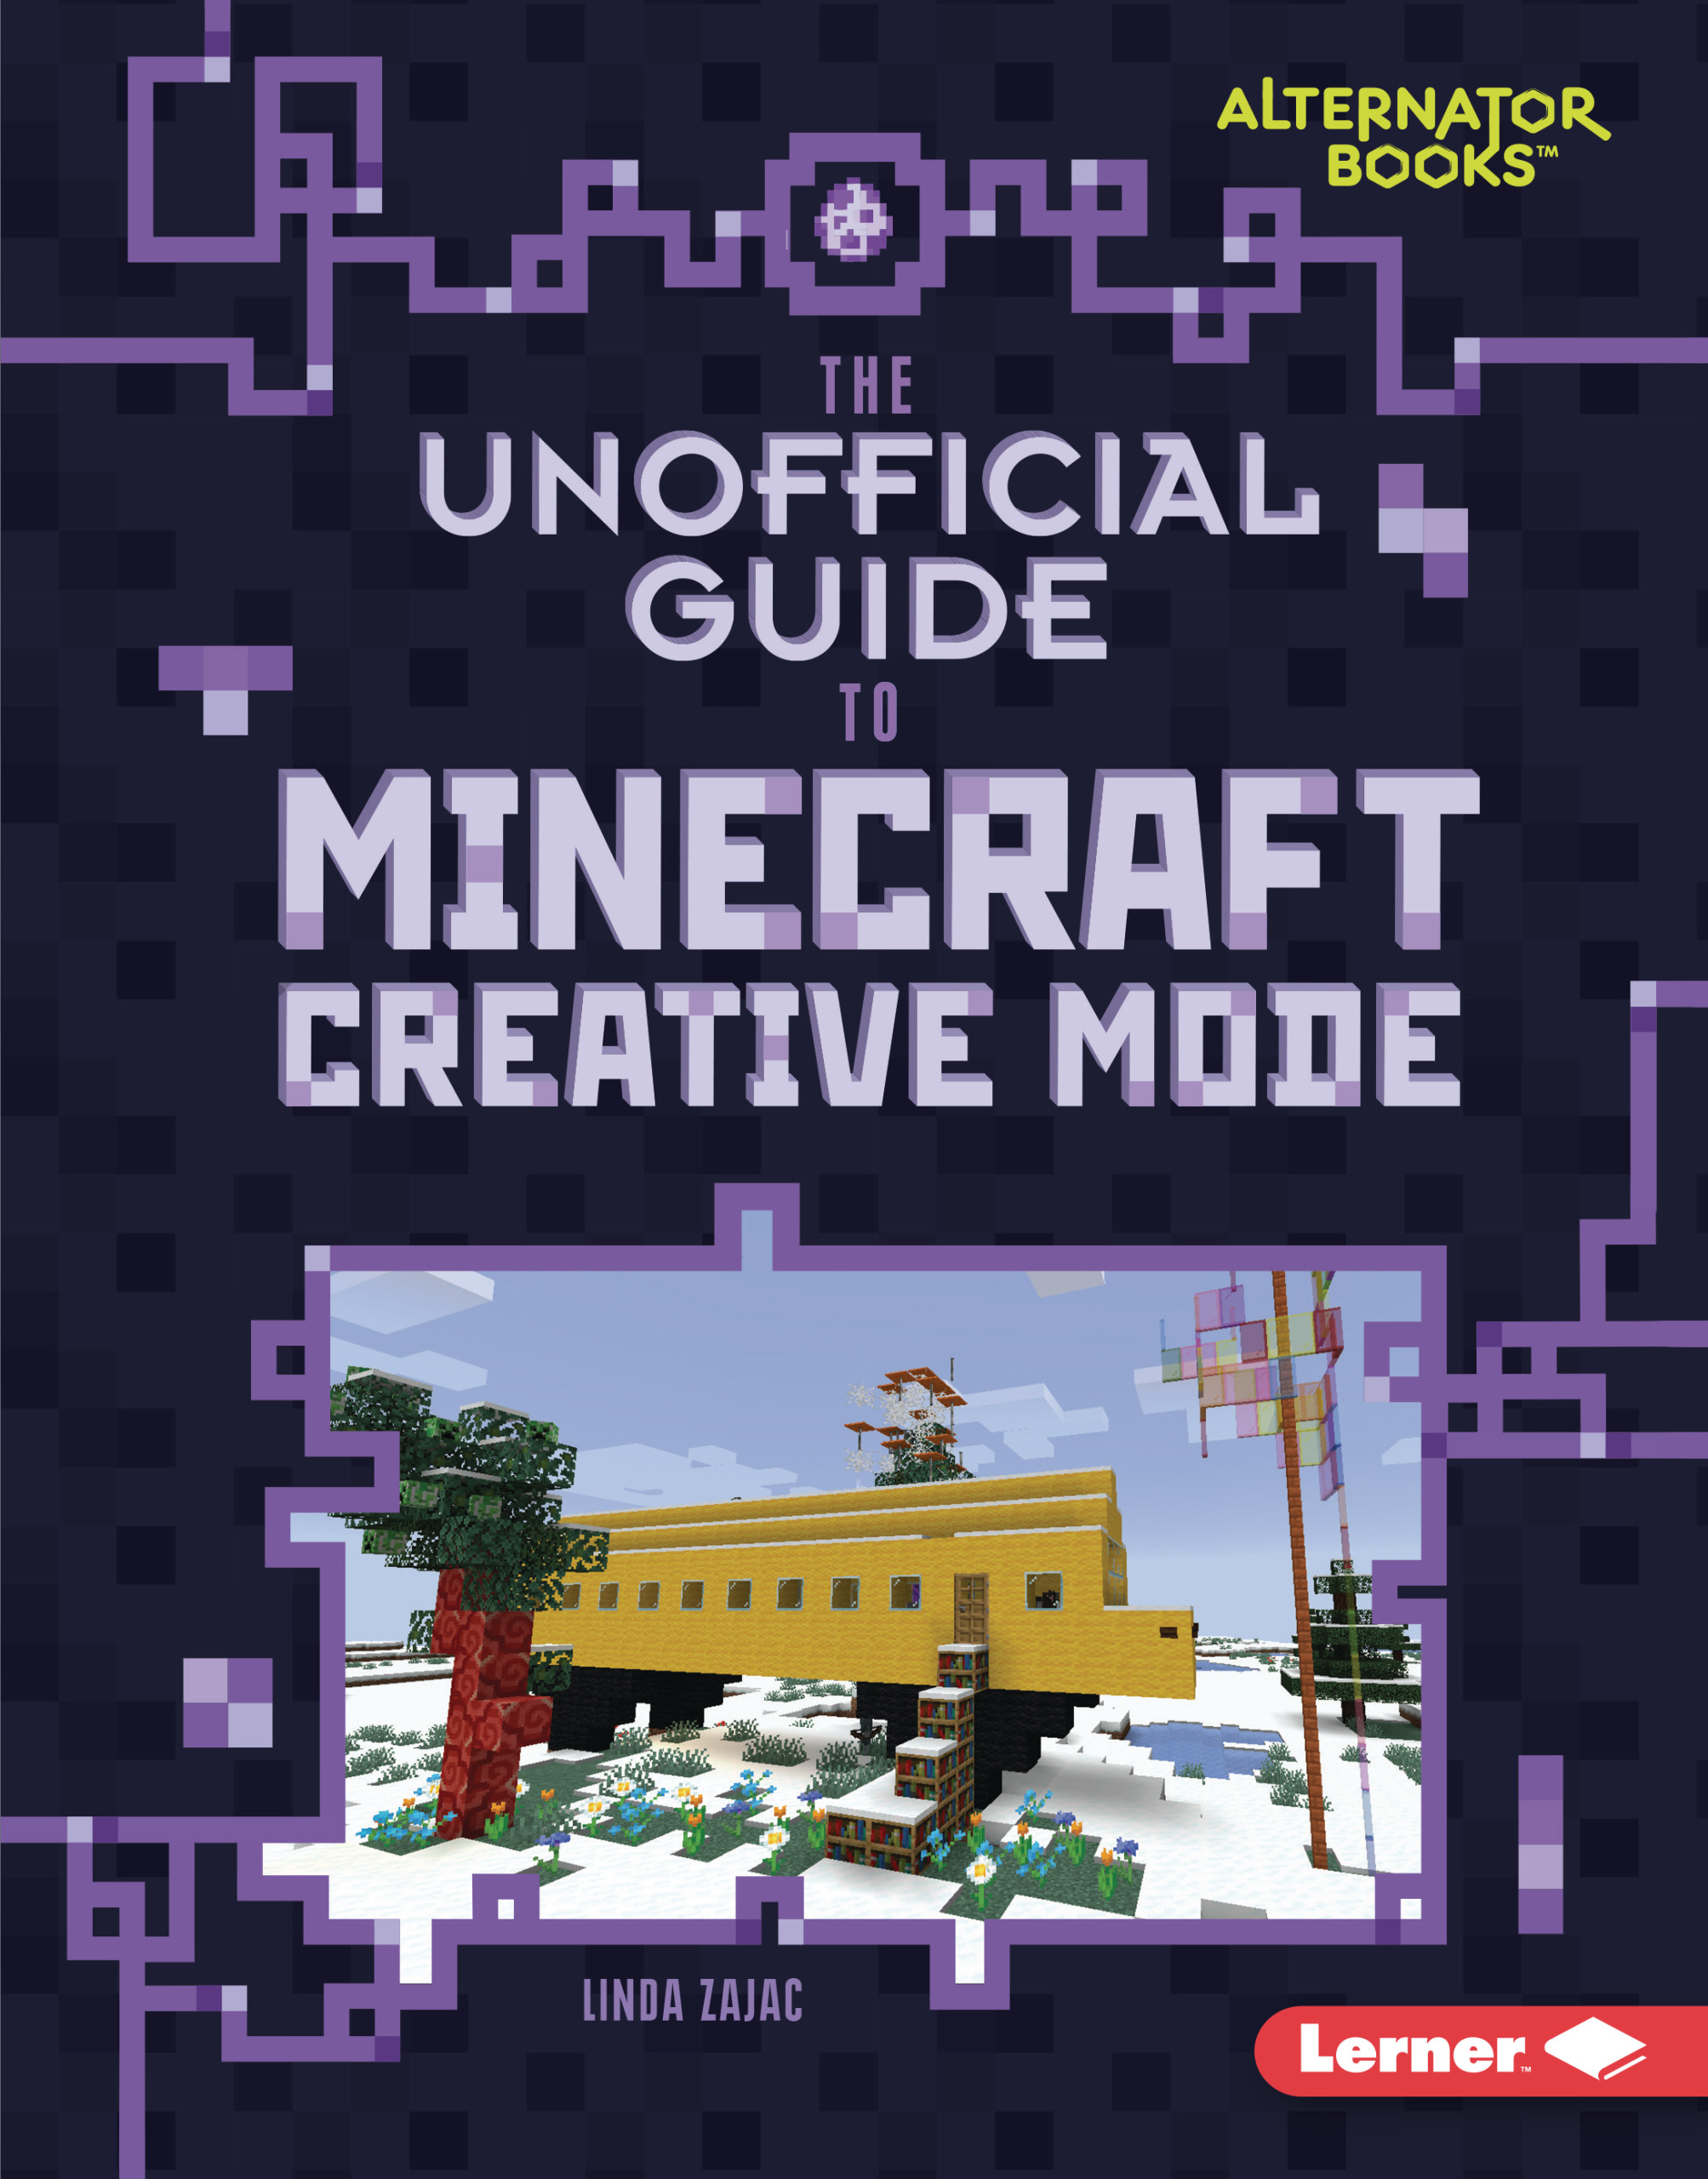 Cover Image of The Unofficial Guide to Minecraft Creative Mode